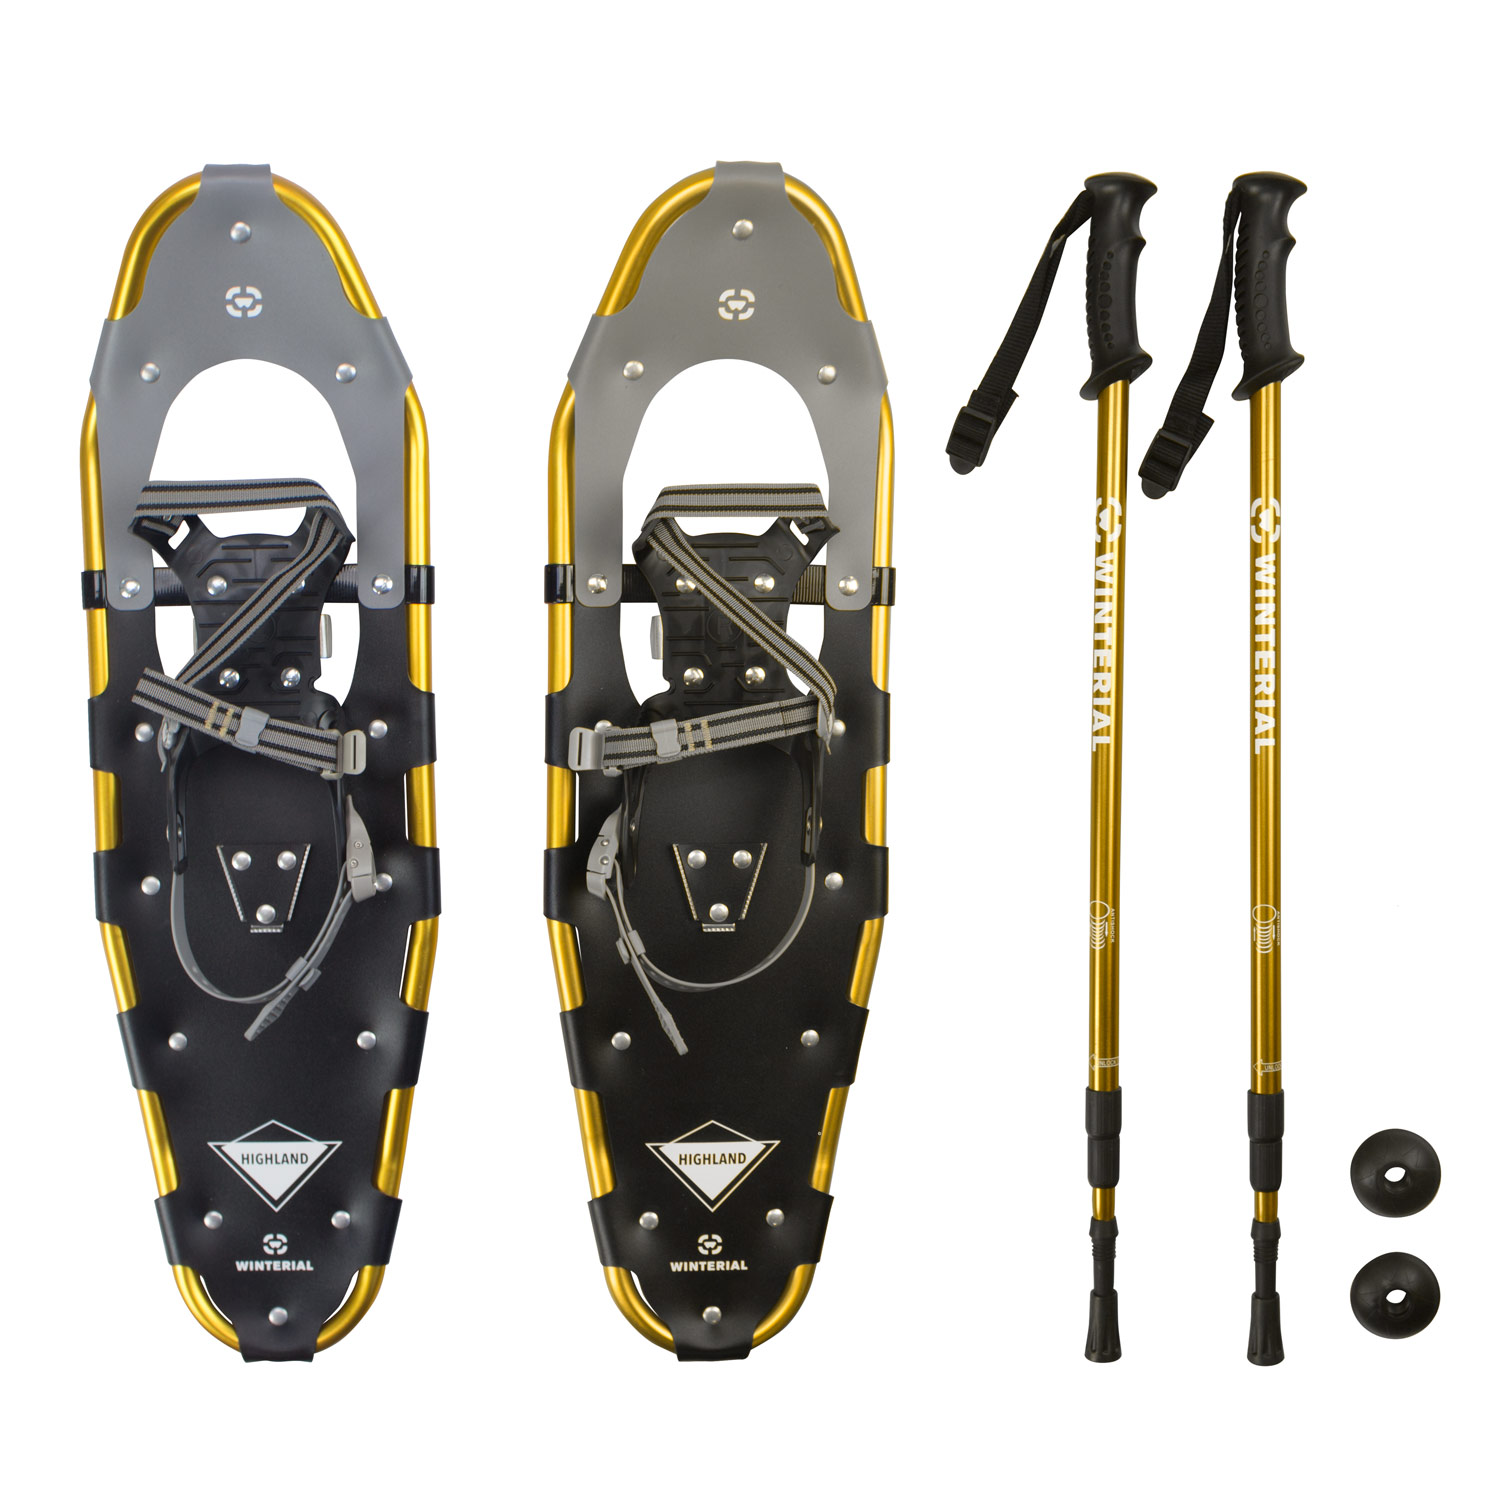 Winterial Highland Snowshoes   Recreational Snowshoeing   Adult   Backcountry   Rolling Terrain Snowshoes   POLES... by Winterial